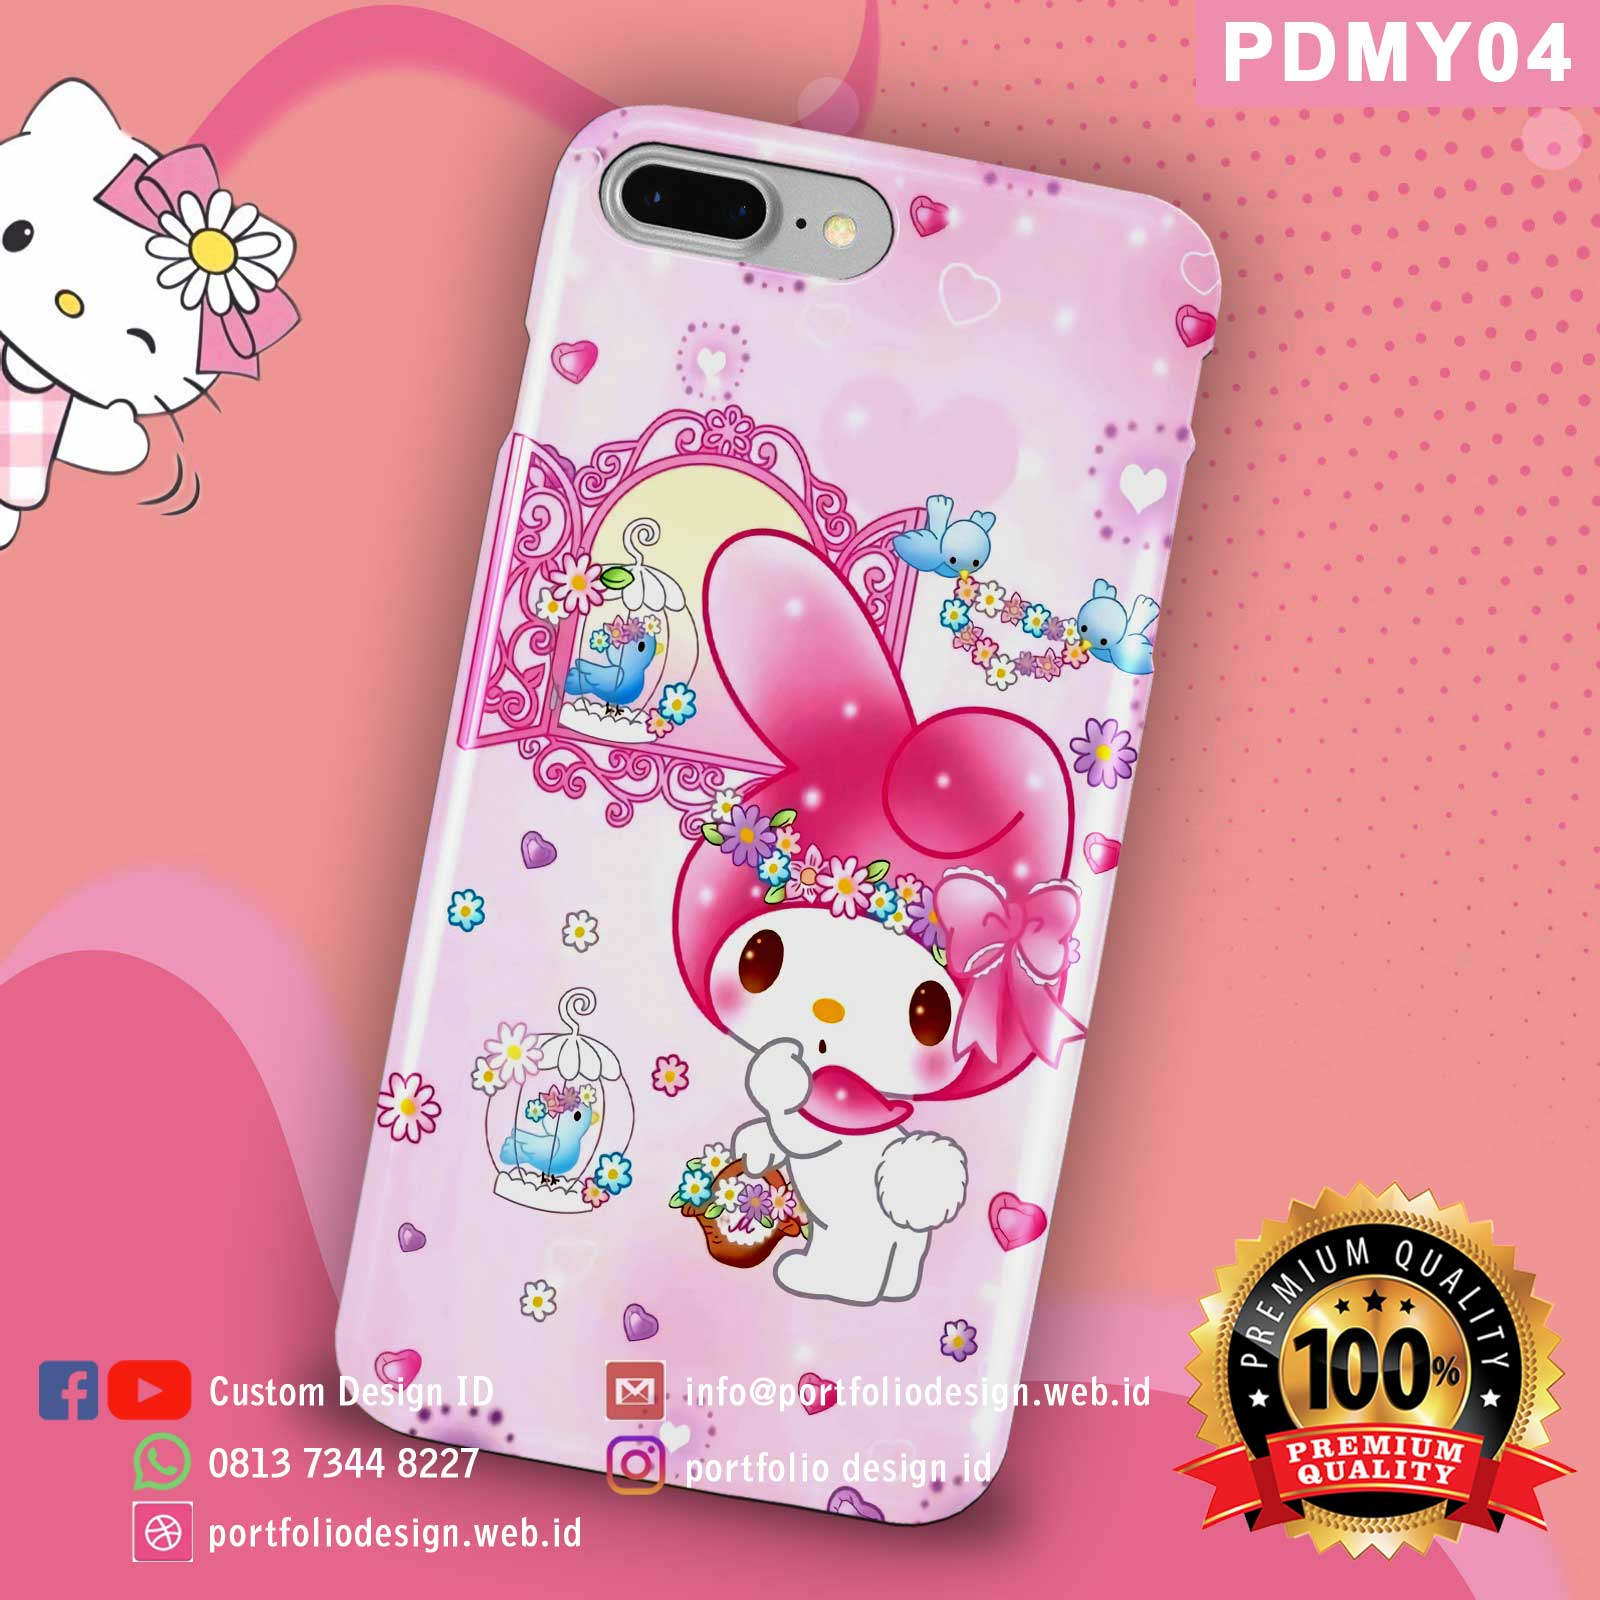 Casing hp my melody PDMY04